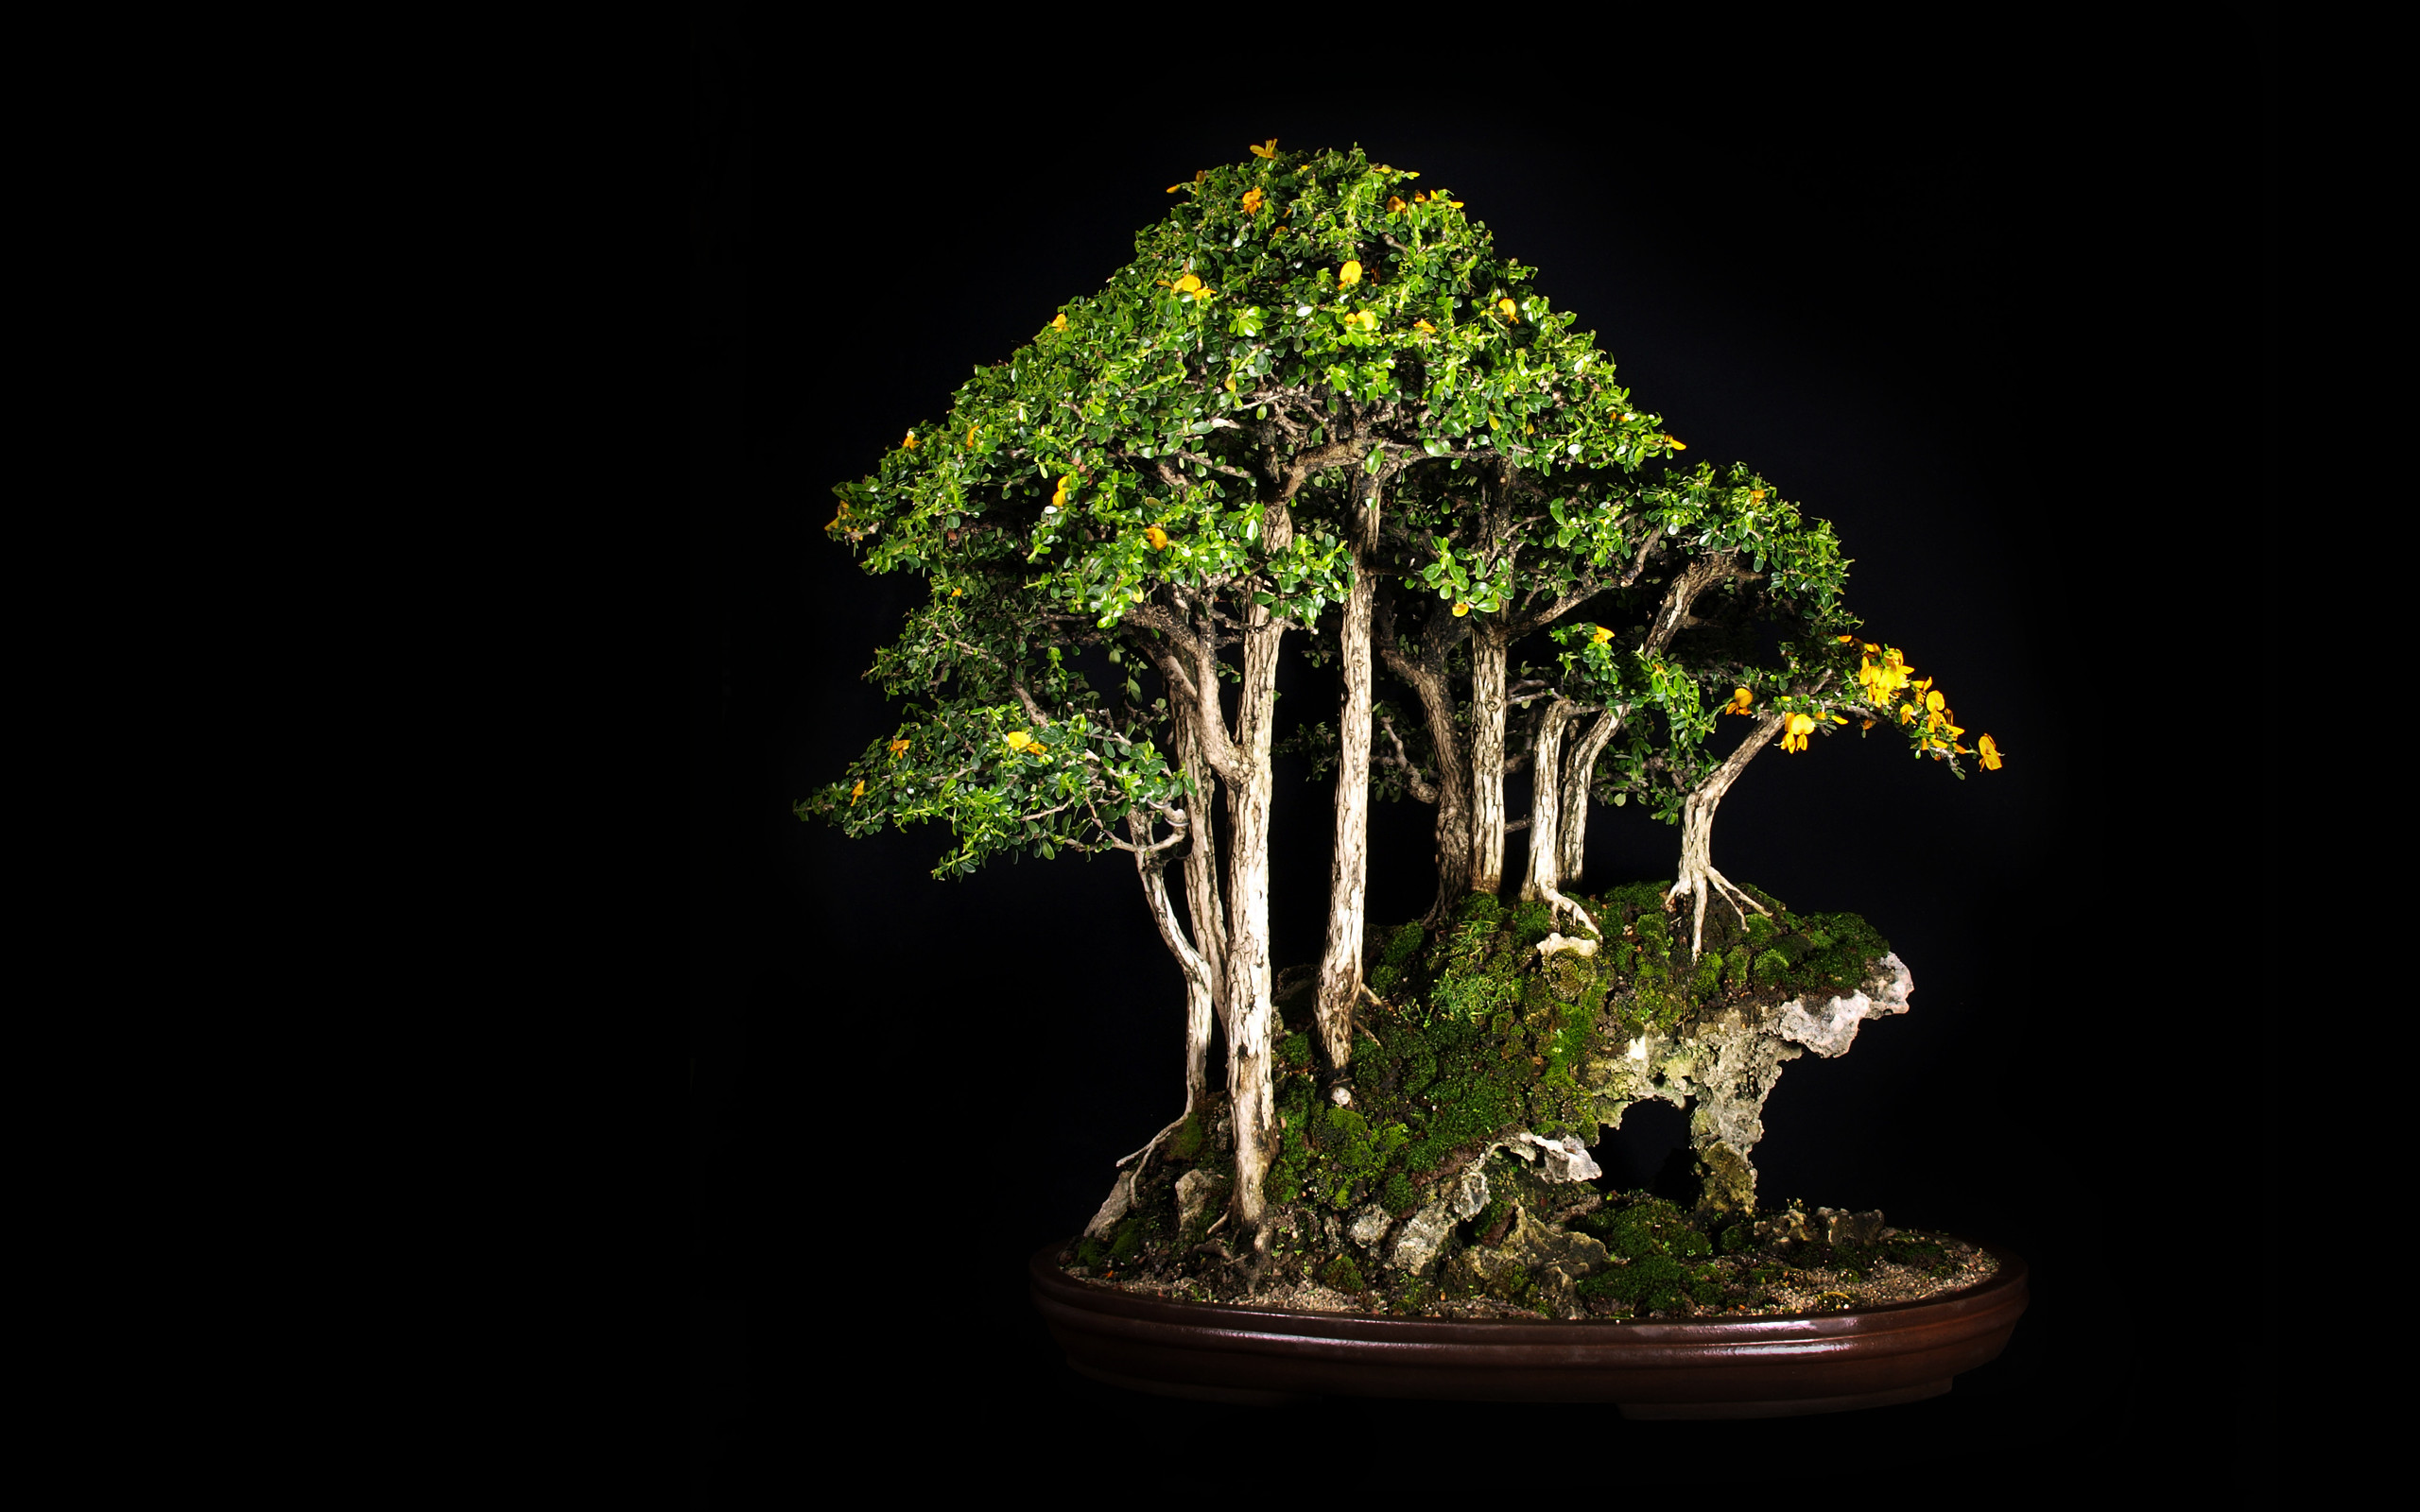 2560x1600 high definition, bonsai, peace, lovely place, windows wallpaper,download, tree, tree, free, leaves, black Wallpaper HD